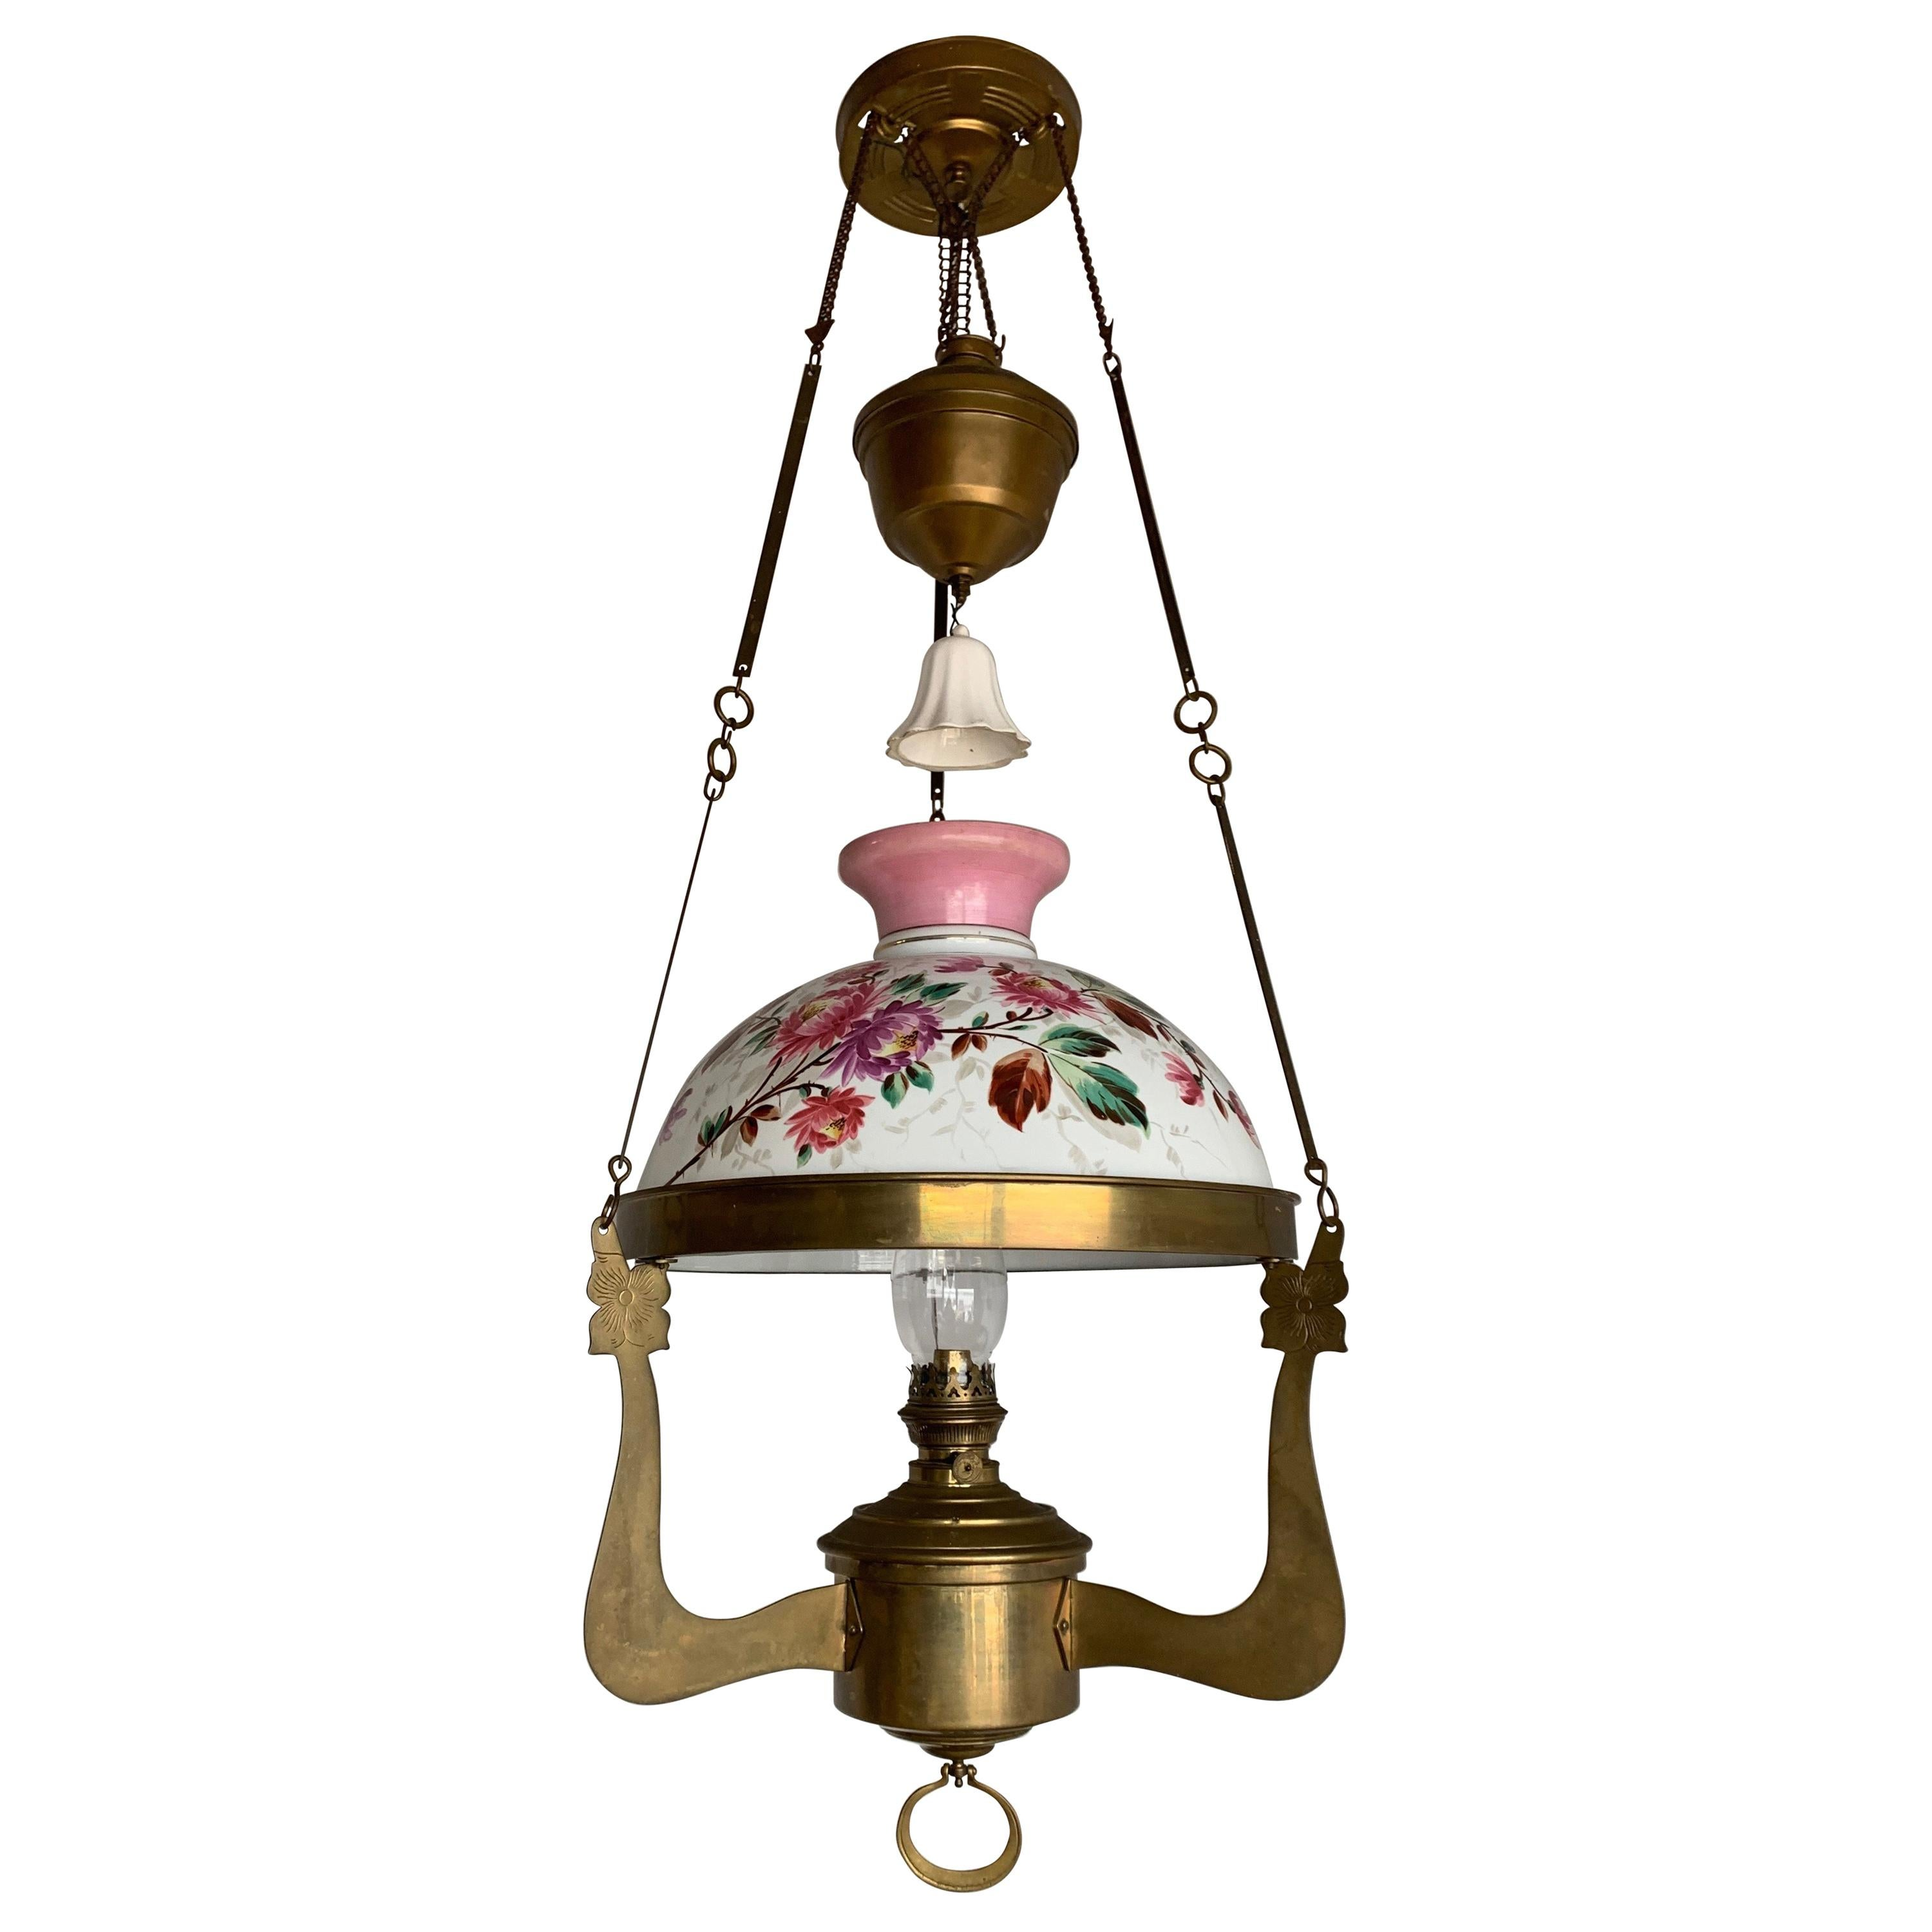 Arts & Crafts Brass and Opaline Shade Oil Lamp or Adjustable Floral Chandelier